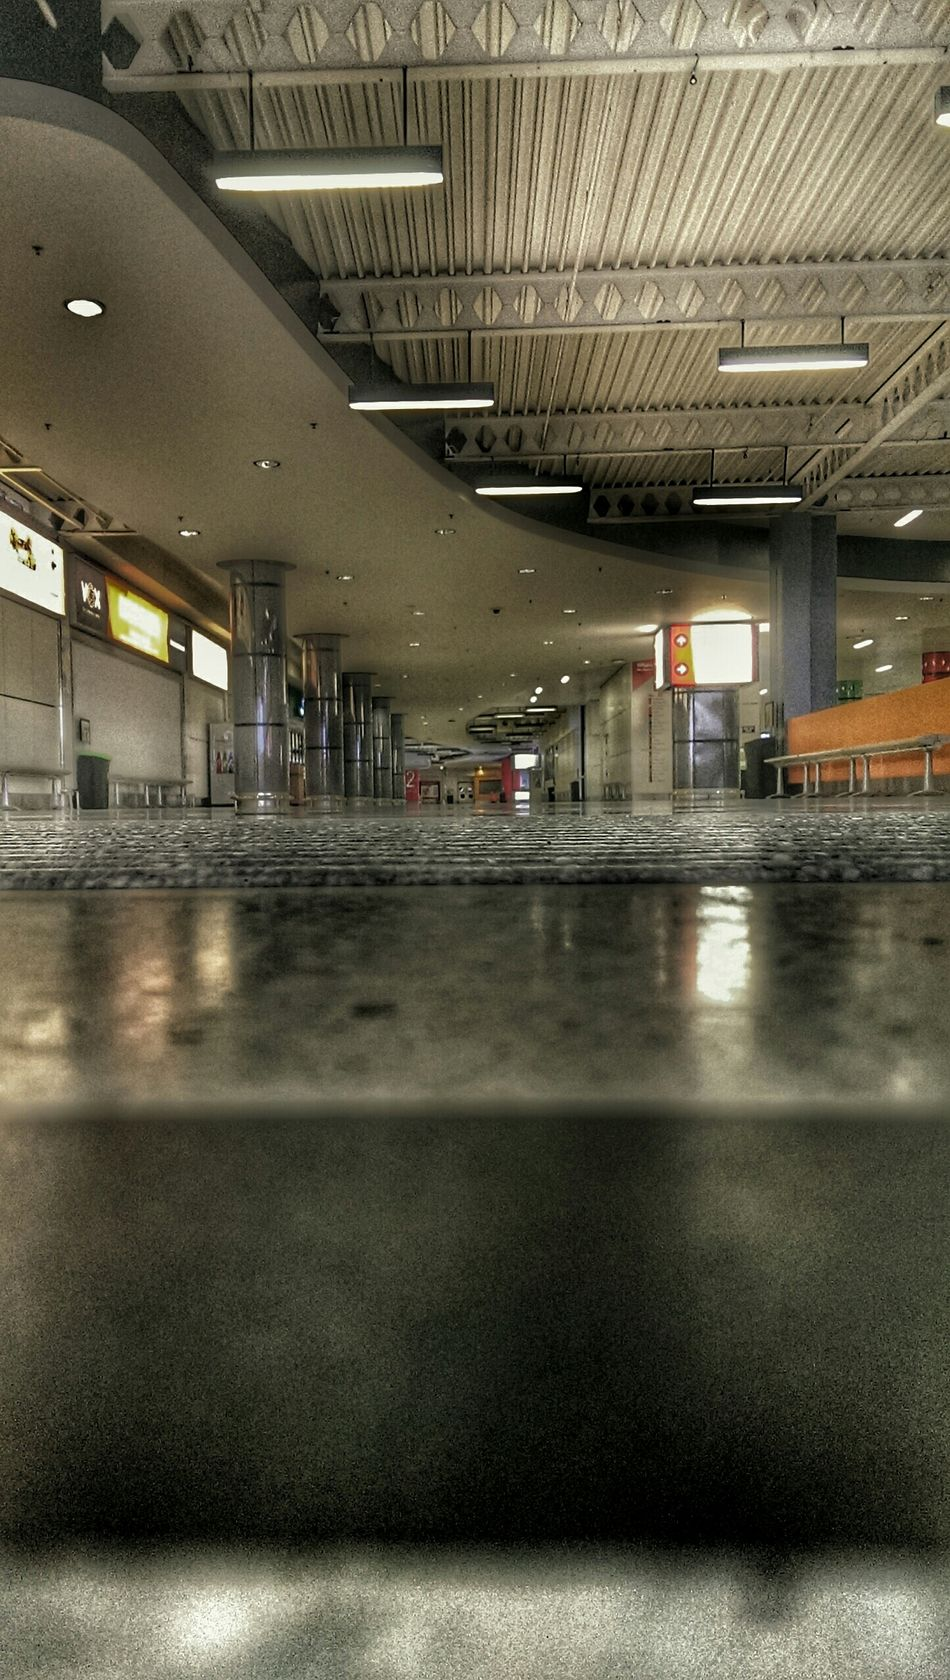 Wormseyeview Notes From The Underground From The Ground Up Hdr Edit Empty Places National Exhibition Centre Birmingham International Airport Networking Meeting Only Me